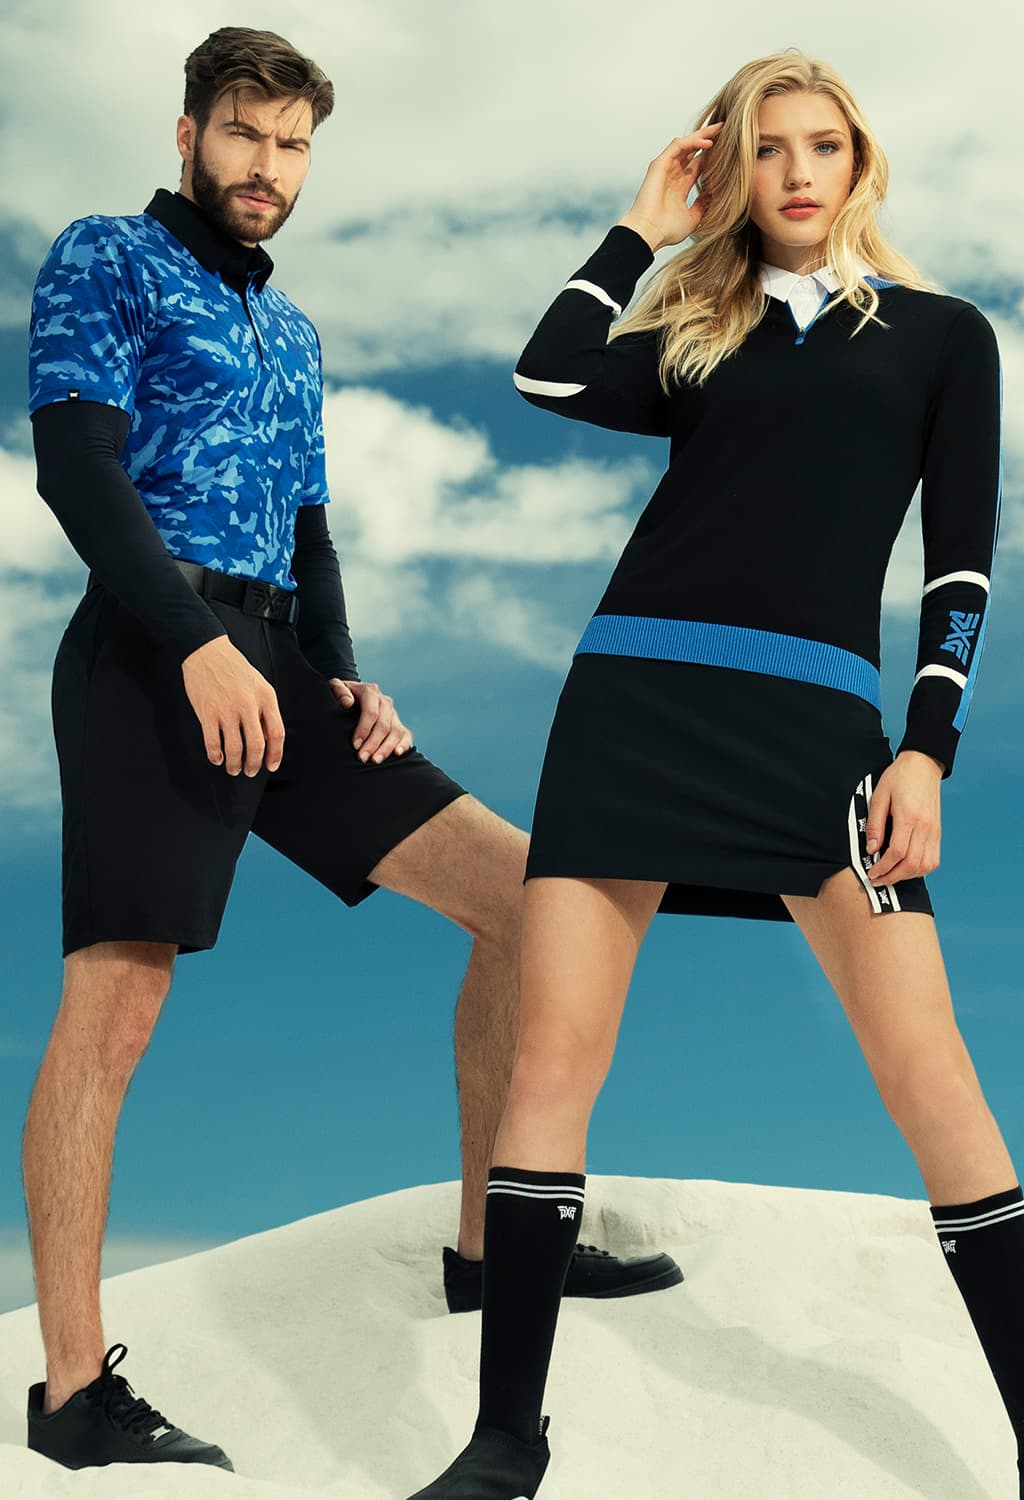 Man and woman modeling PXG apparel